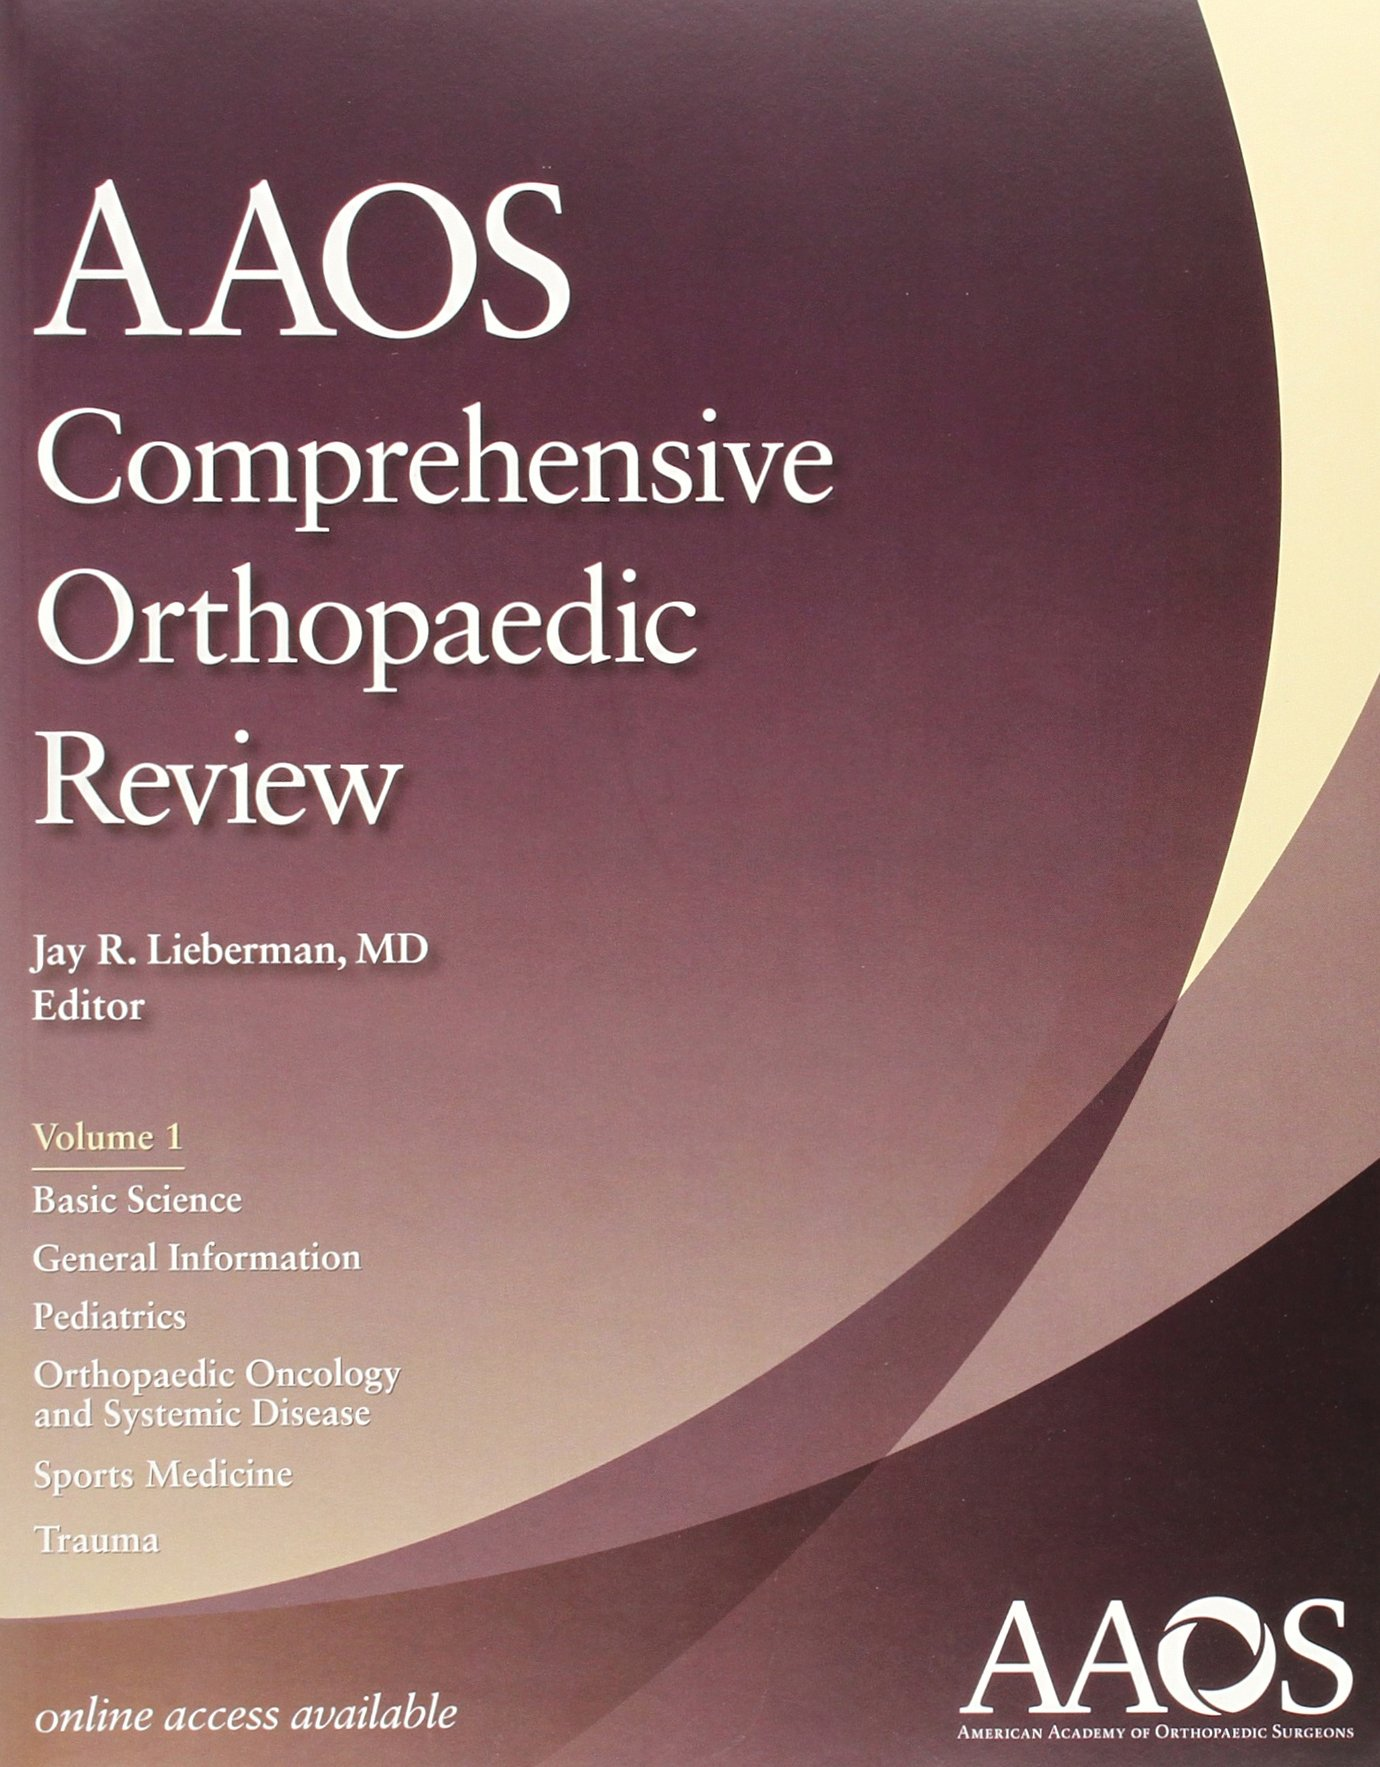 aaos comprehensive orthopaedic review amazon co uk jay r rh amazon co uk